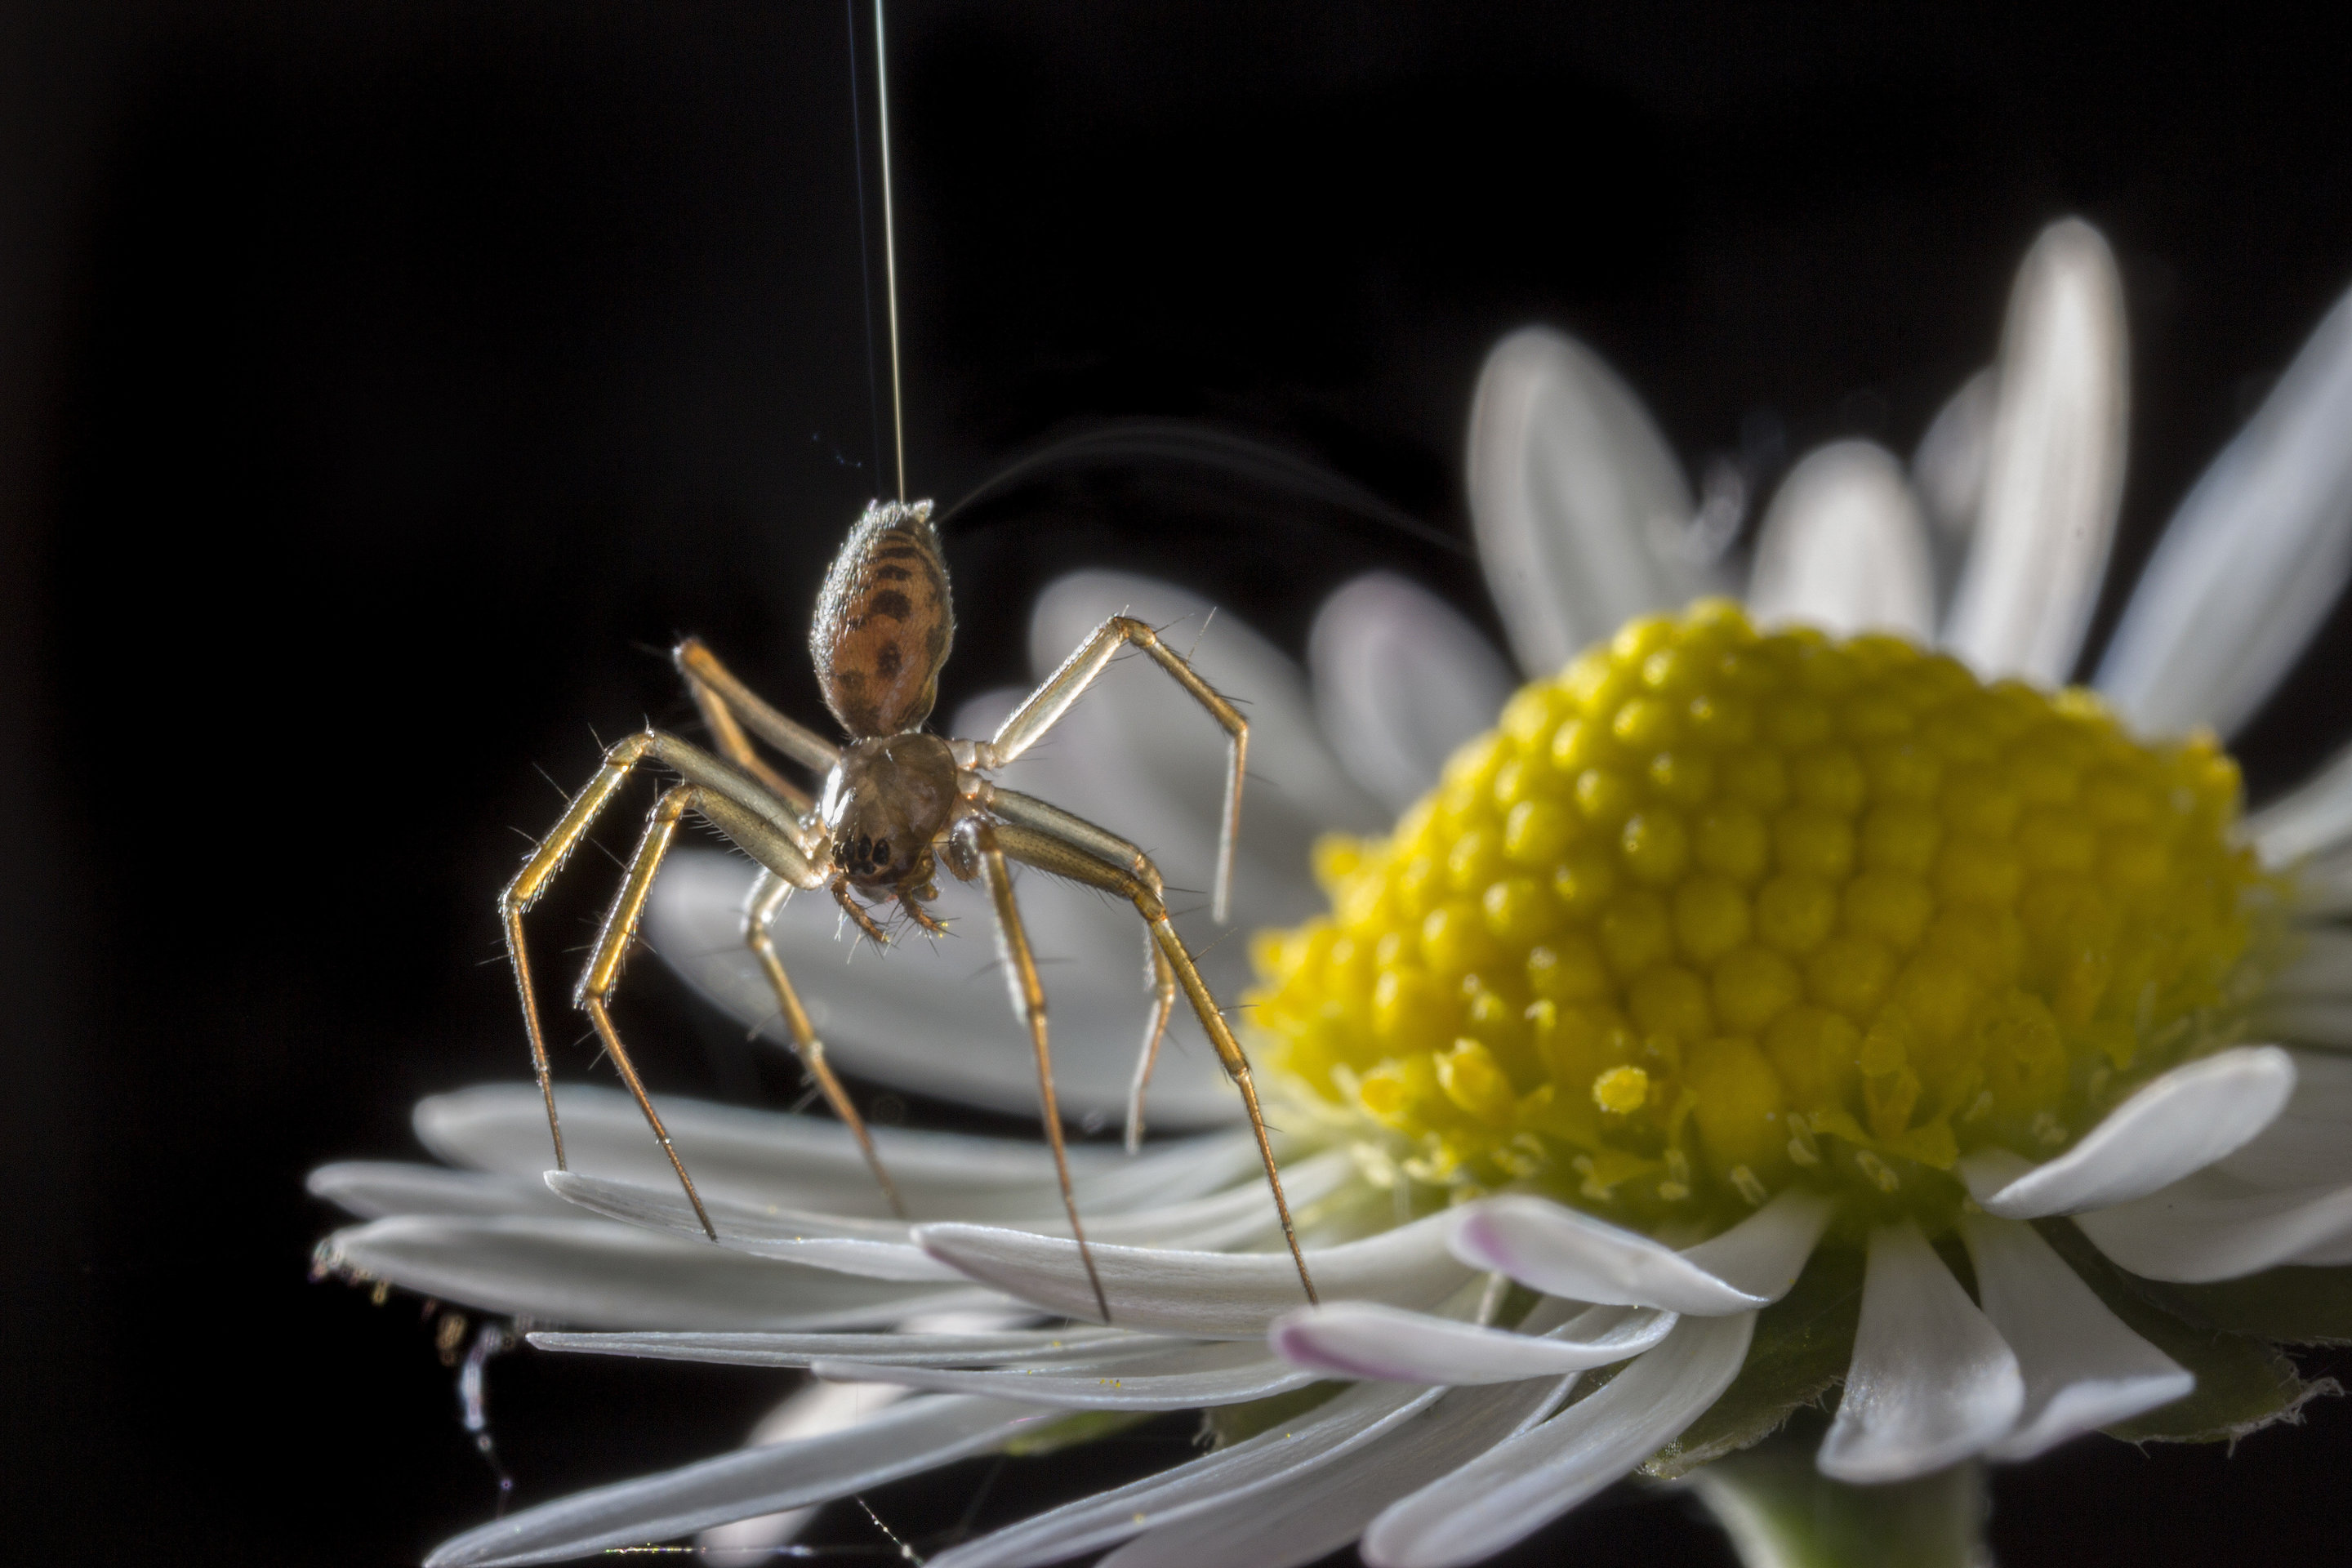 Spiders Go Ballooning On Electric Fields Magnetic Field This Property Lets It Trigger An Electronic Circuit Spider Showing A Tiptoe Stance Daisy Credit Michael Hutchinson